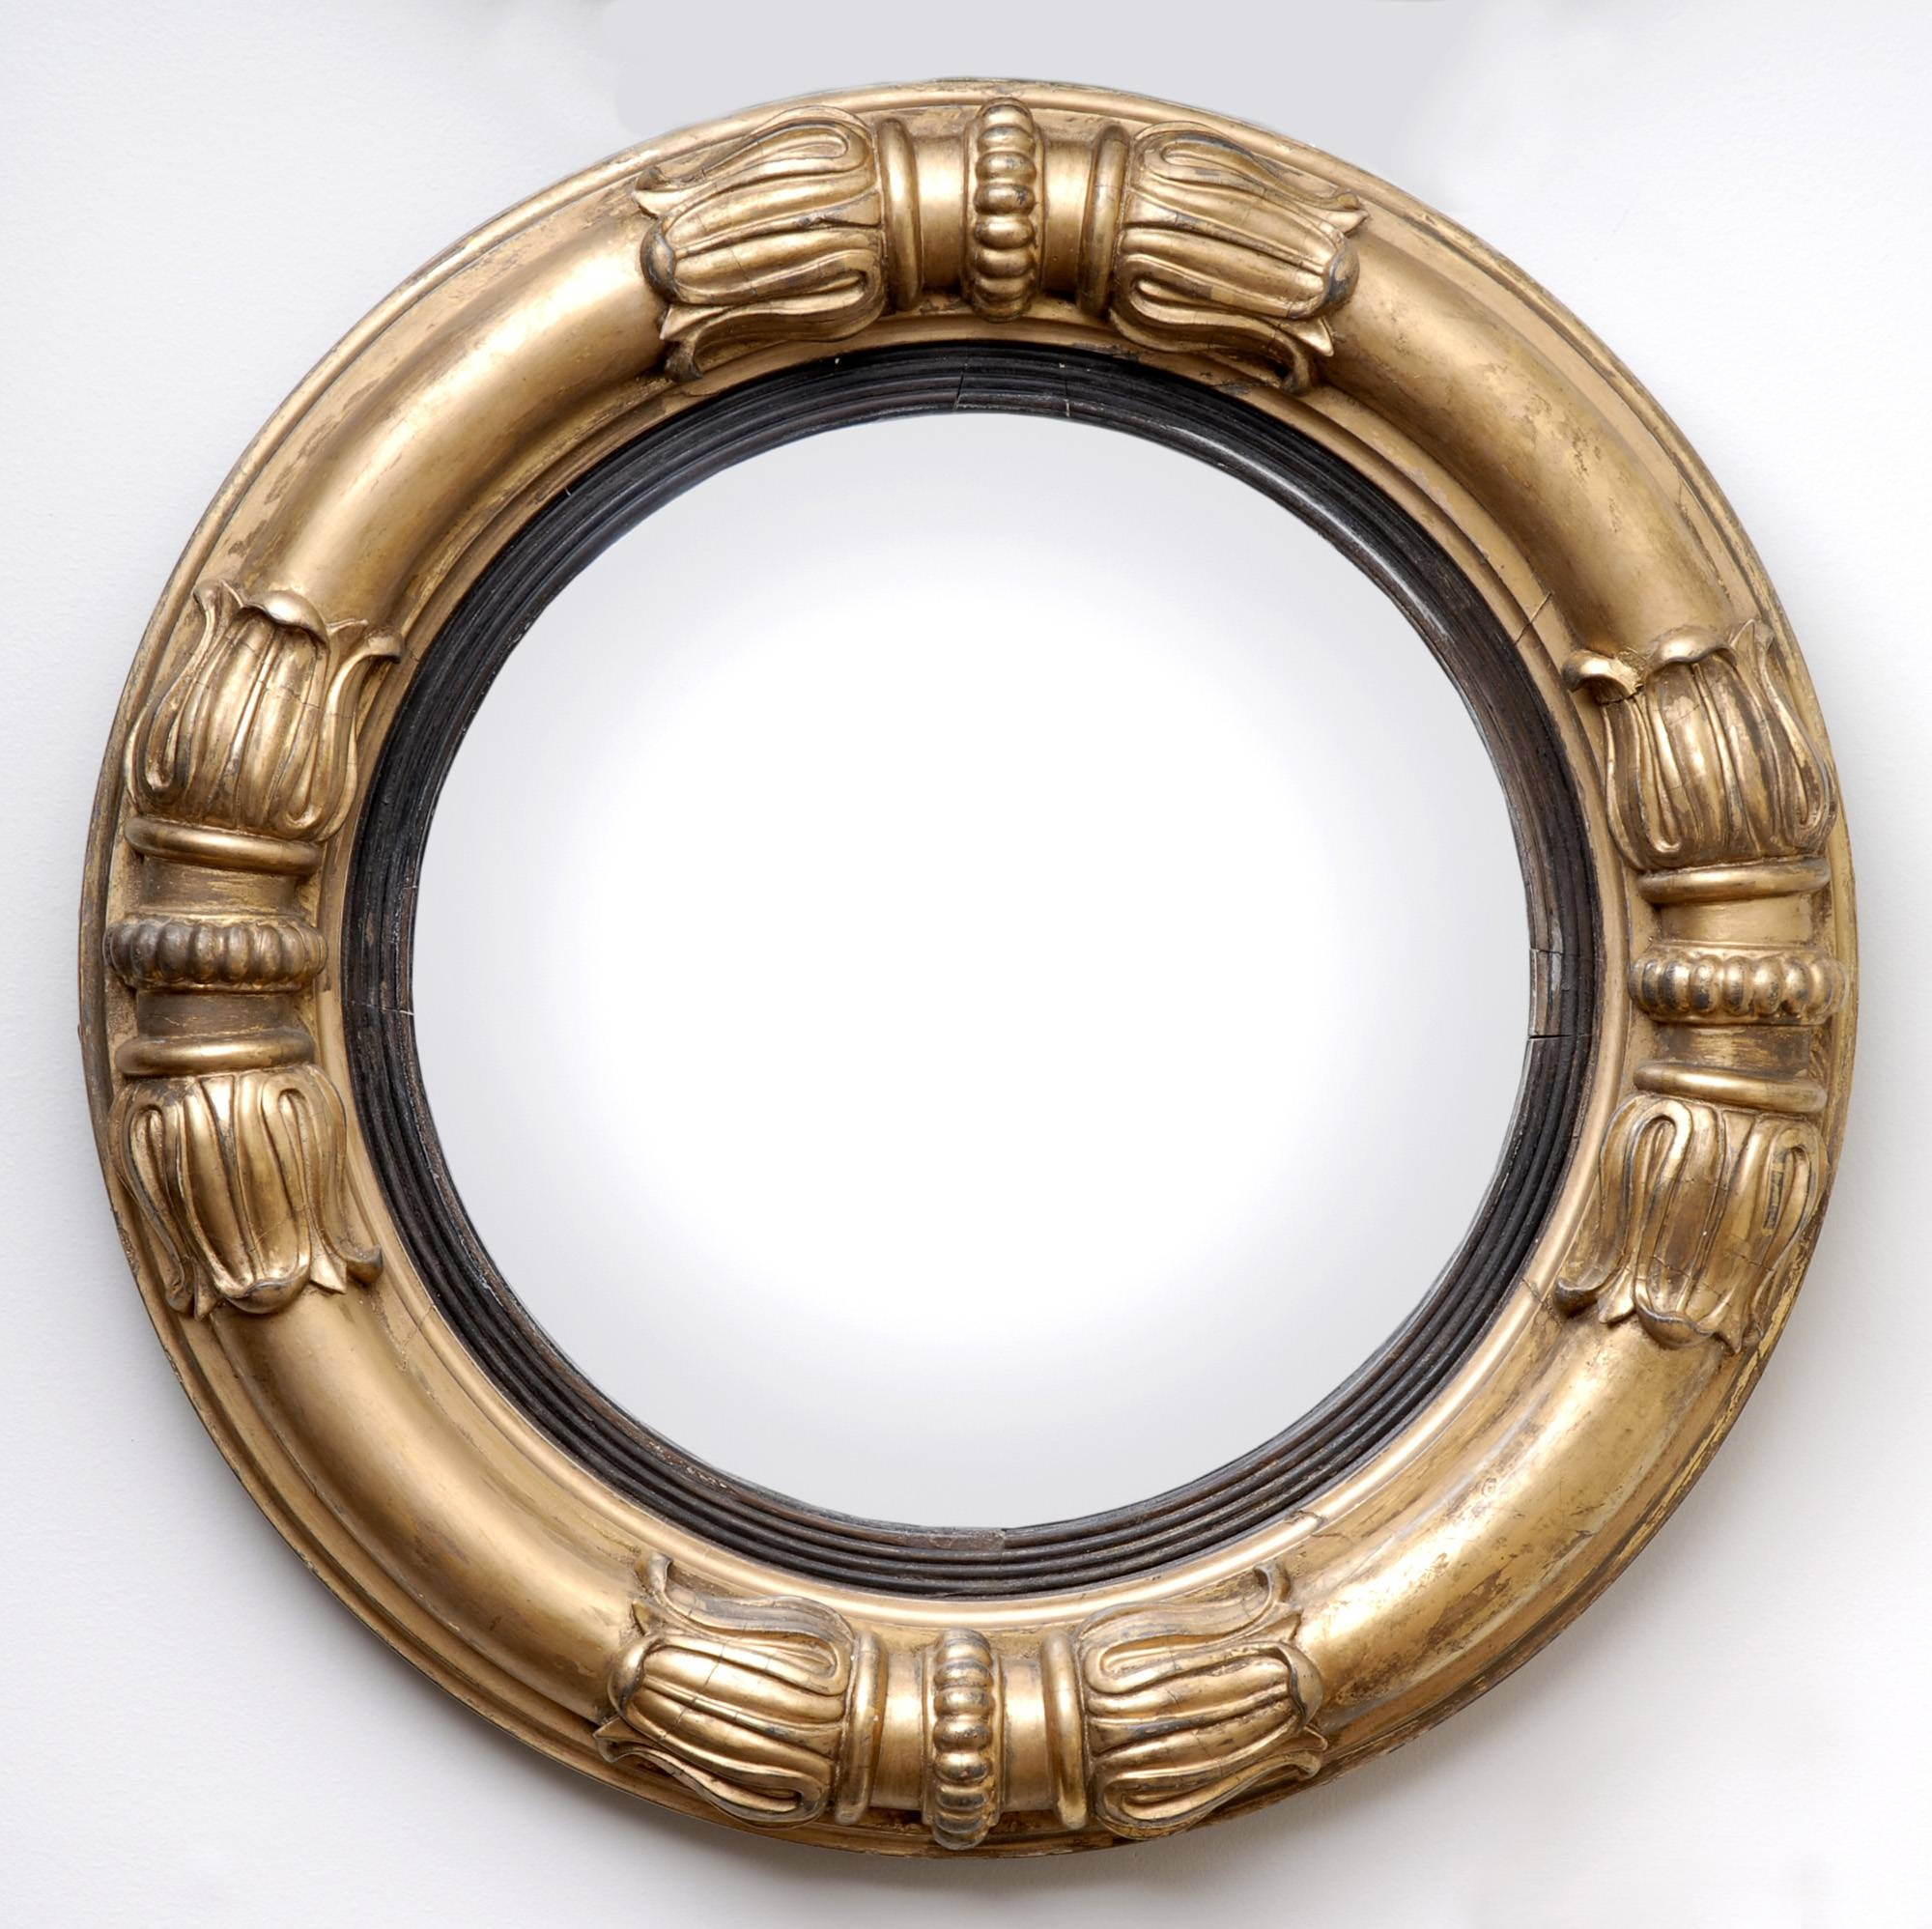 William Iv Giltwood Convex Mirror | Antique English Convex Mirror inside Antique Convex Mirrors (Image 15 of 15)